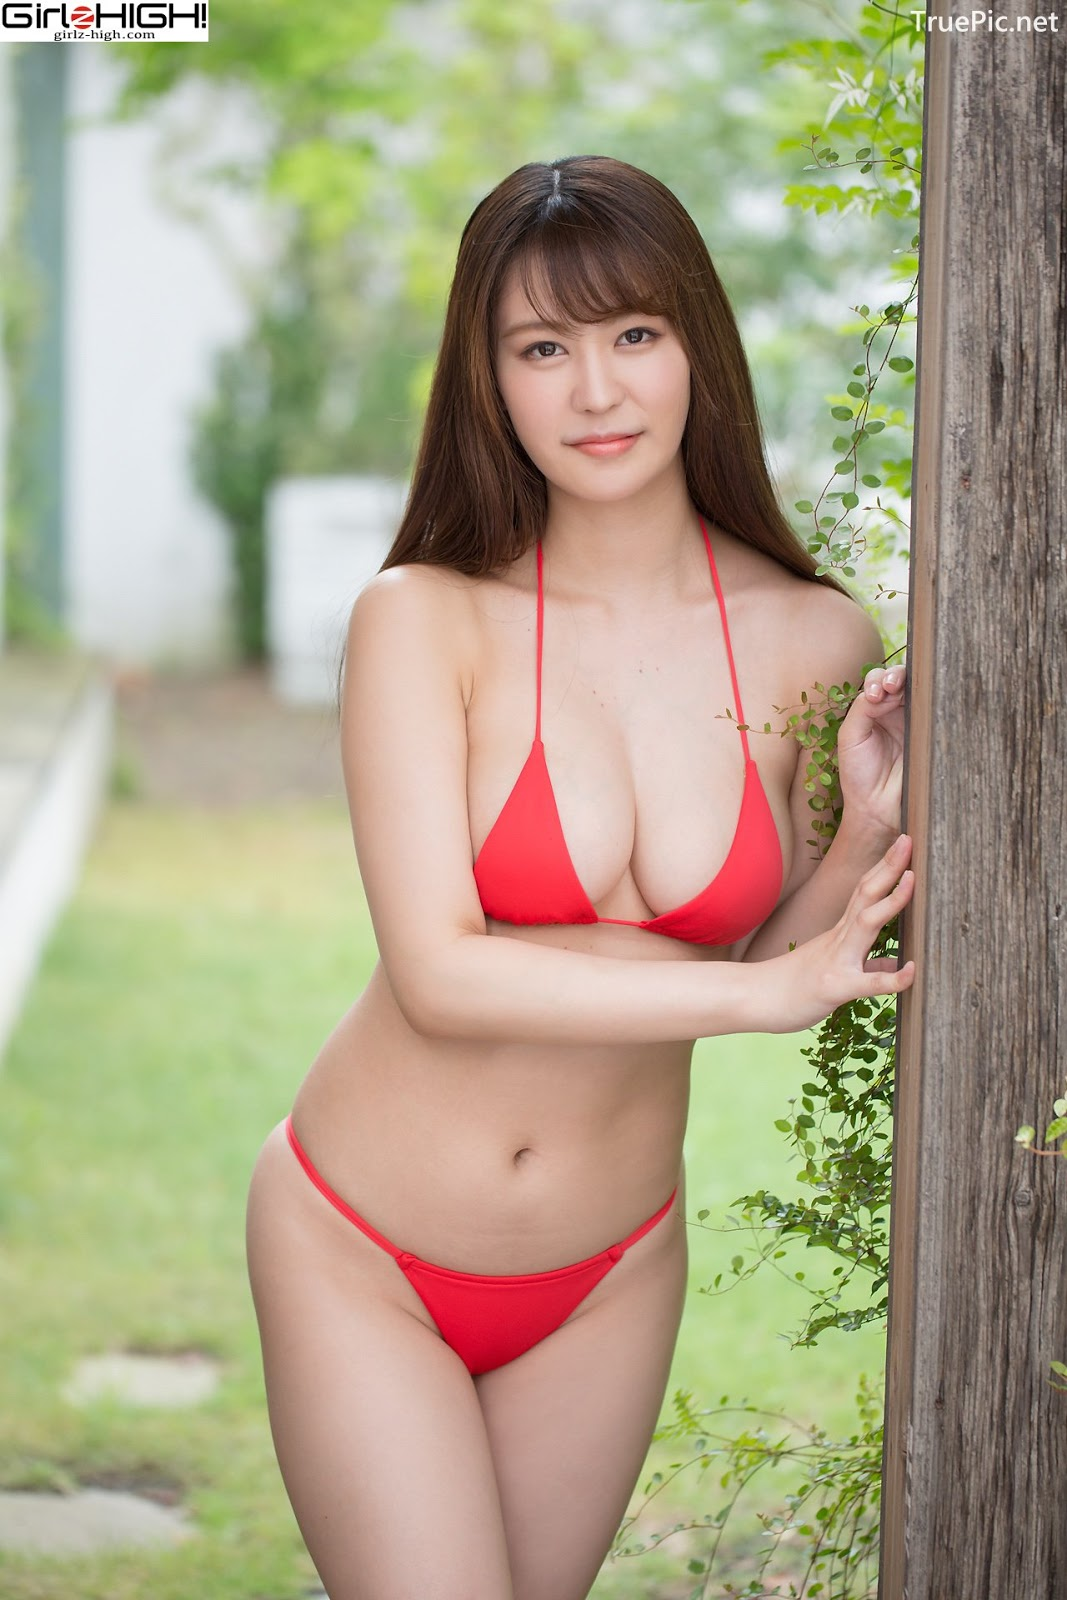 Image Japanese Gravure Idol - Kasumi Yoshinaga - Girlz High Album - TruePic.net - Picture-3